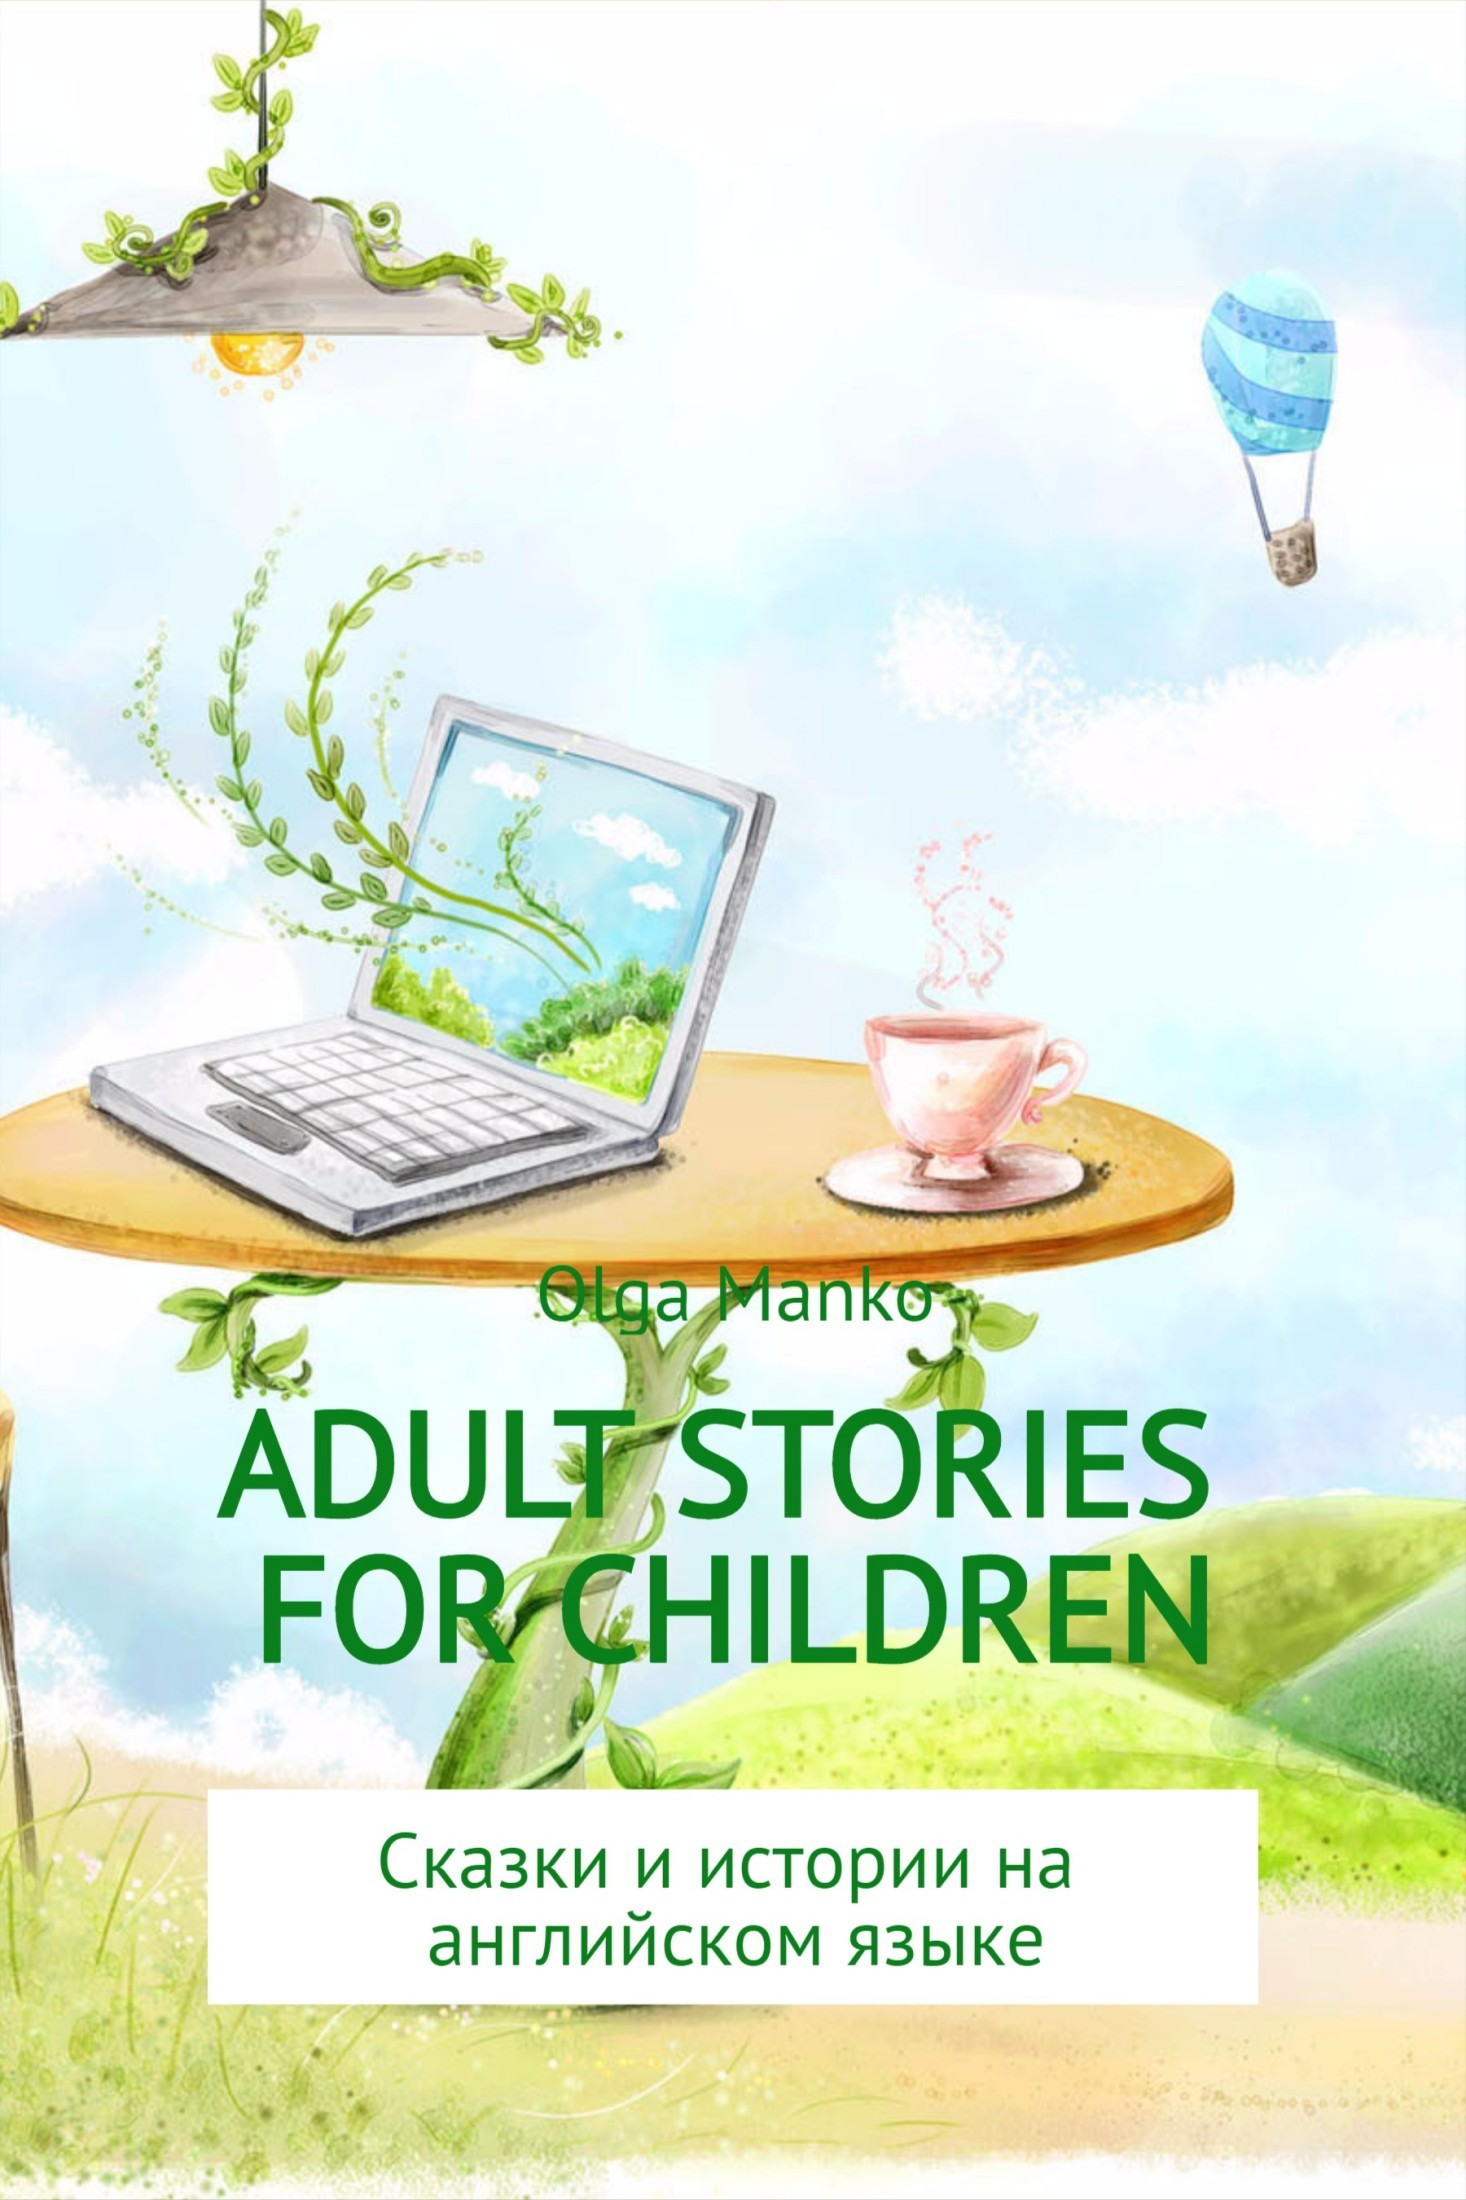 Adult stories for children – Ольга Манько